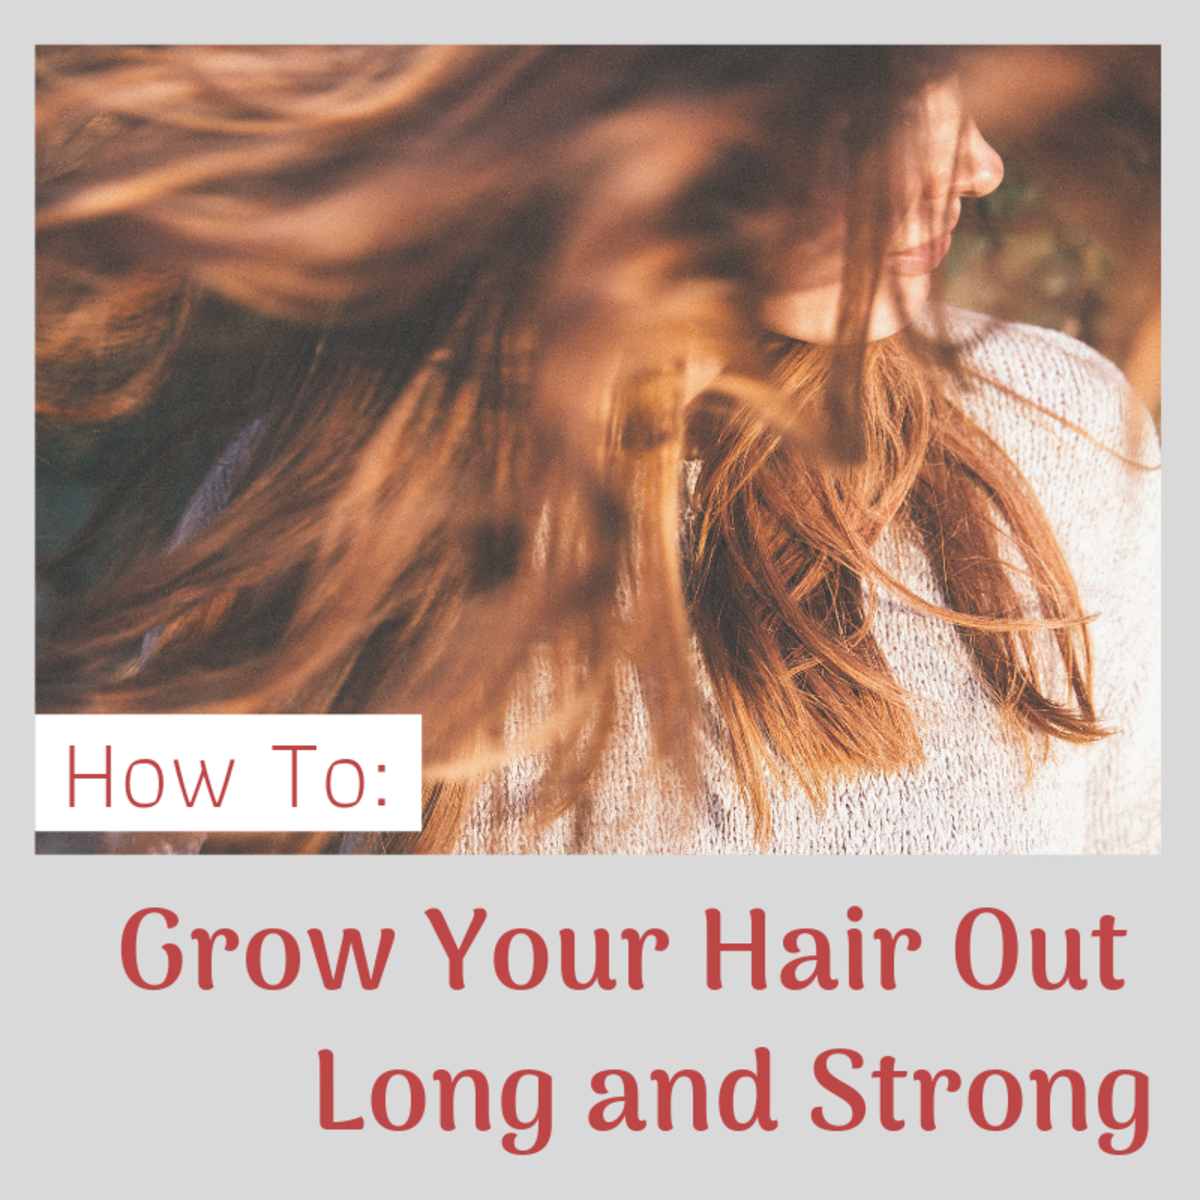 How to Grow Your Hair Out Healthy and Strong